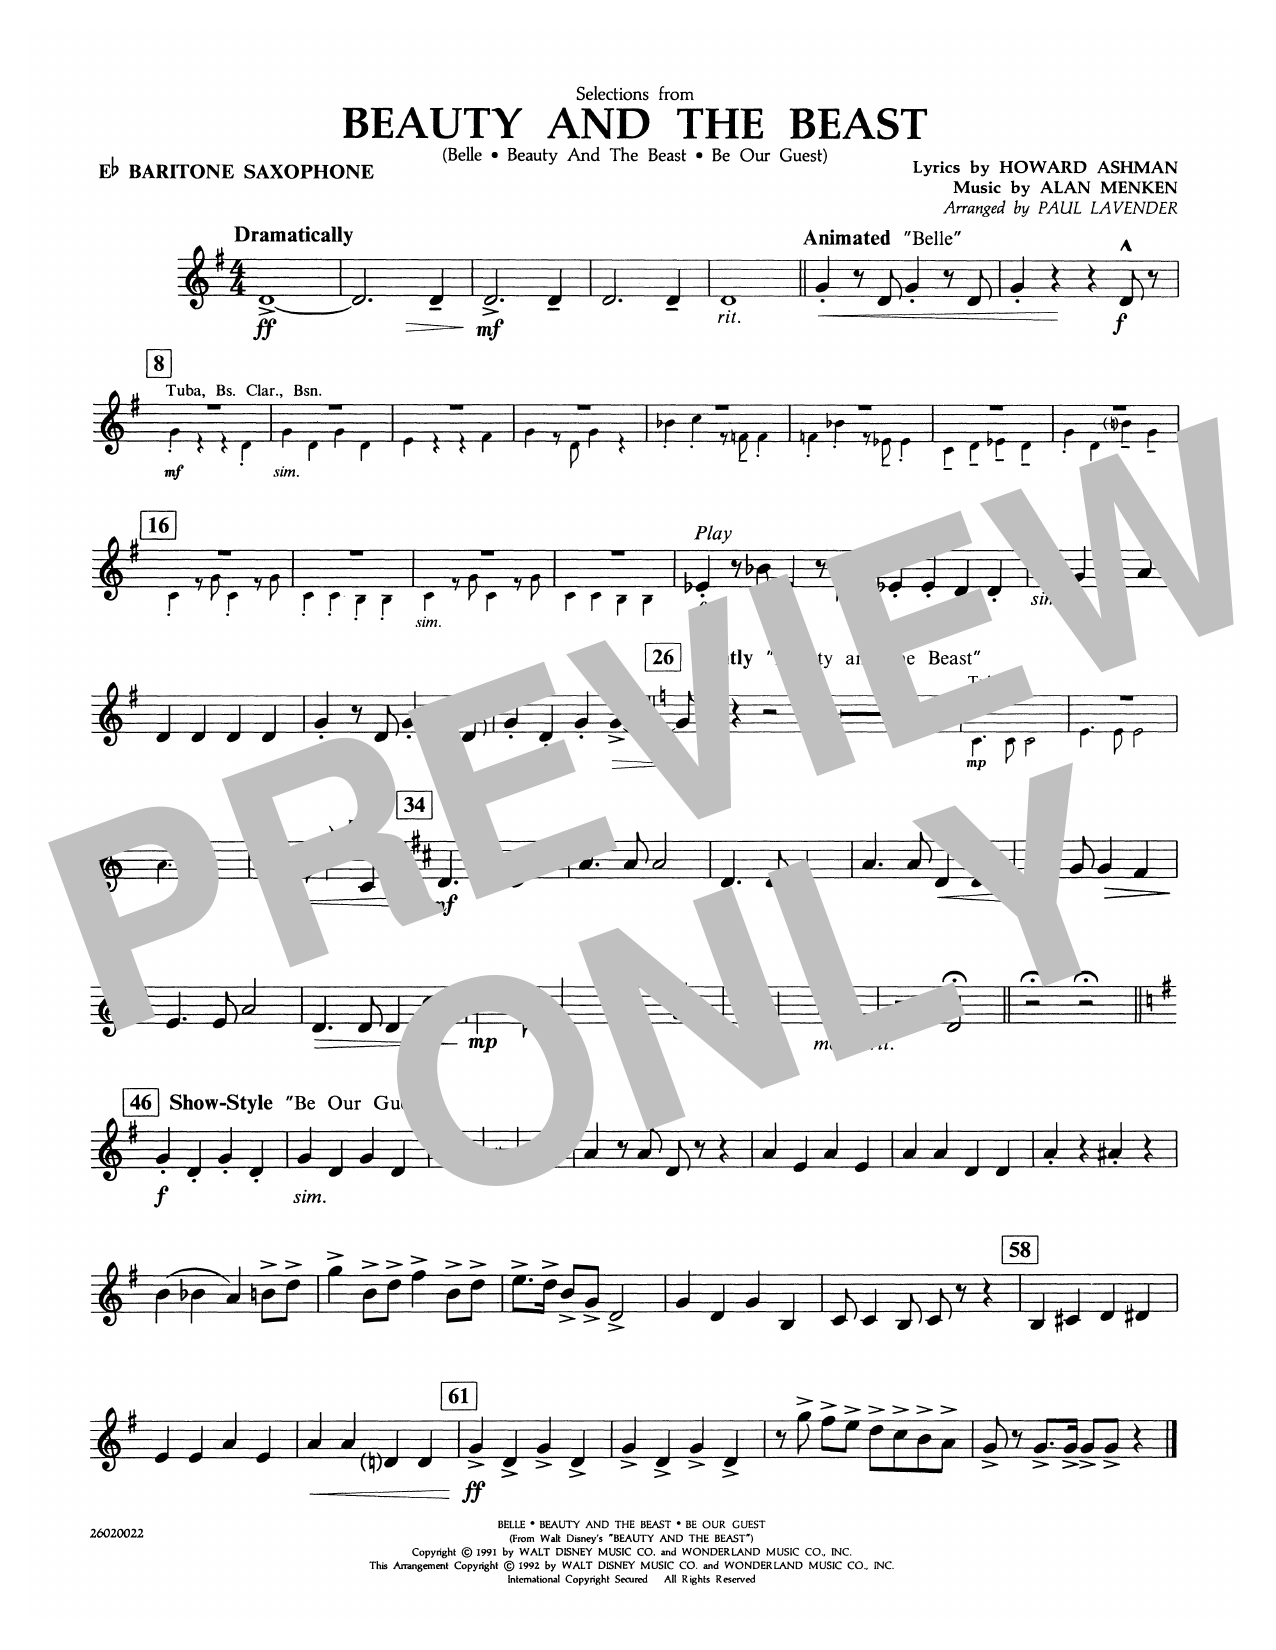 Paul Lavender Selections from Beauty and the Beast - Eb Baritone Sax sheet music notes and chords. Download Printable PDF.